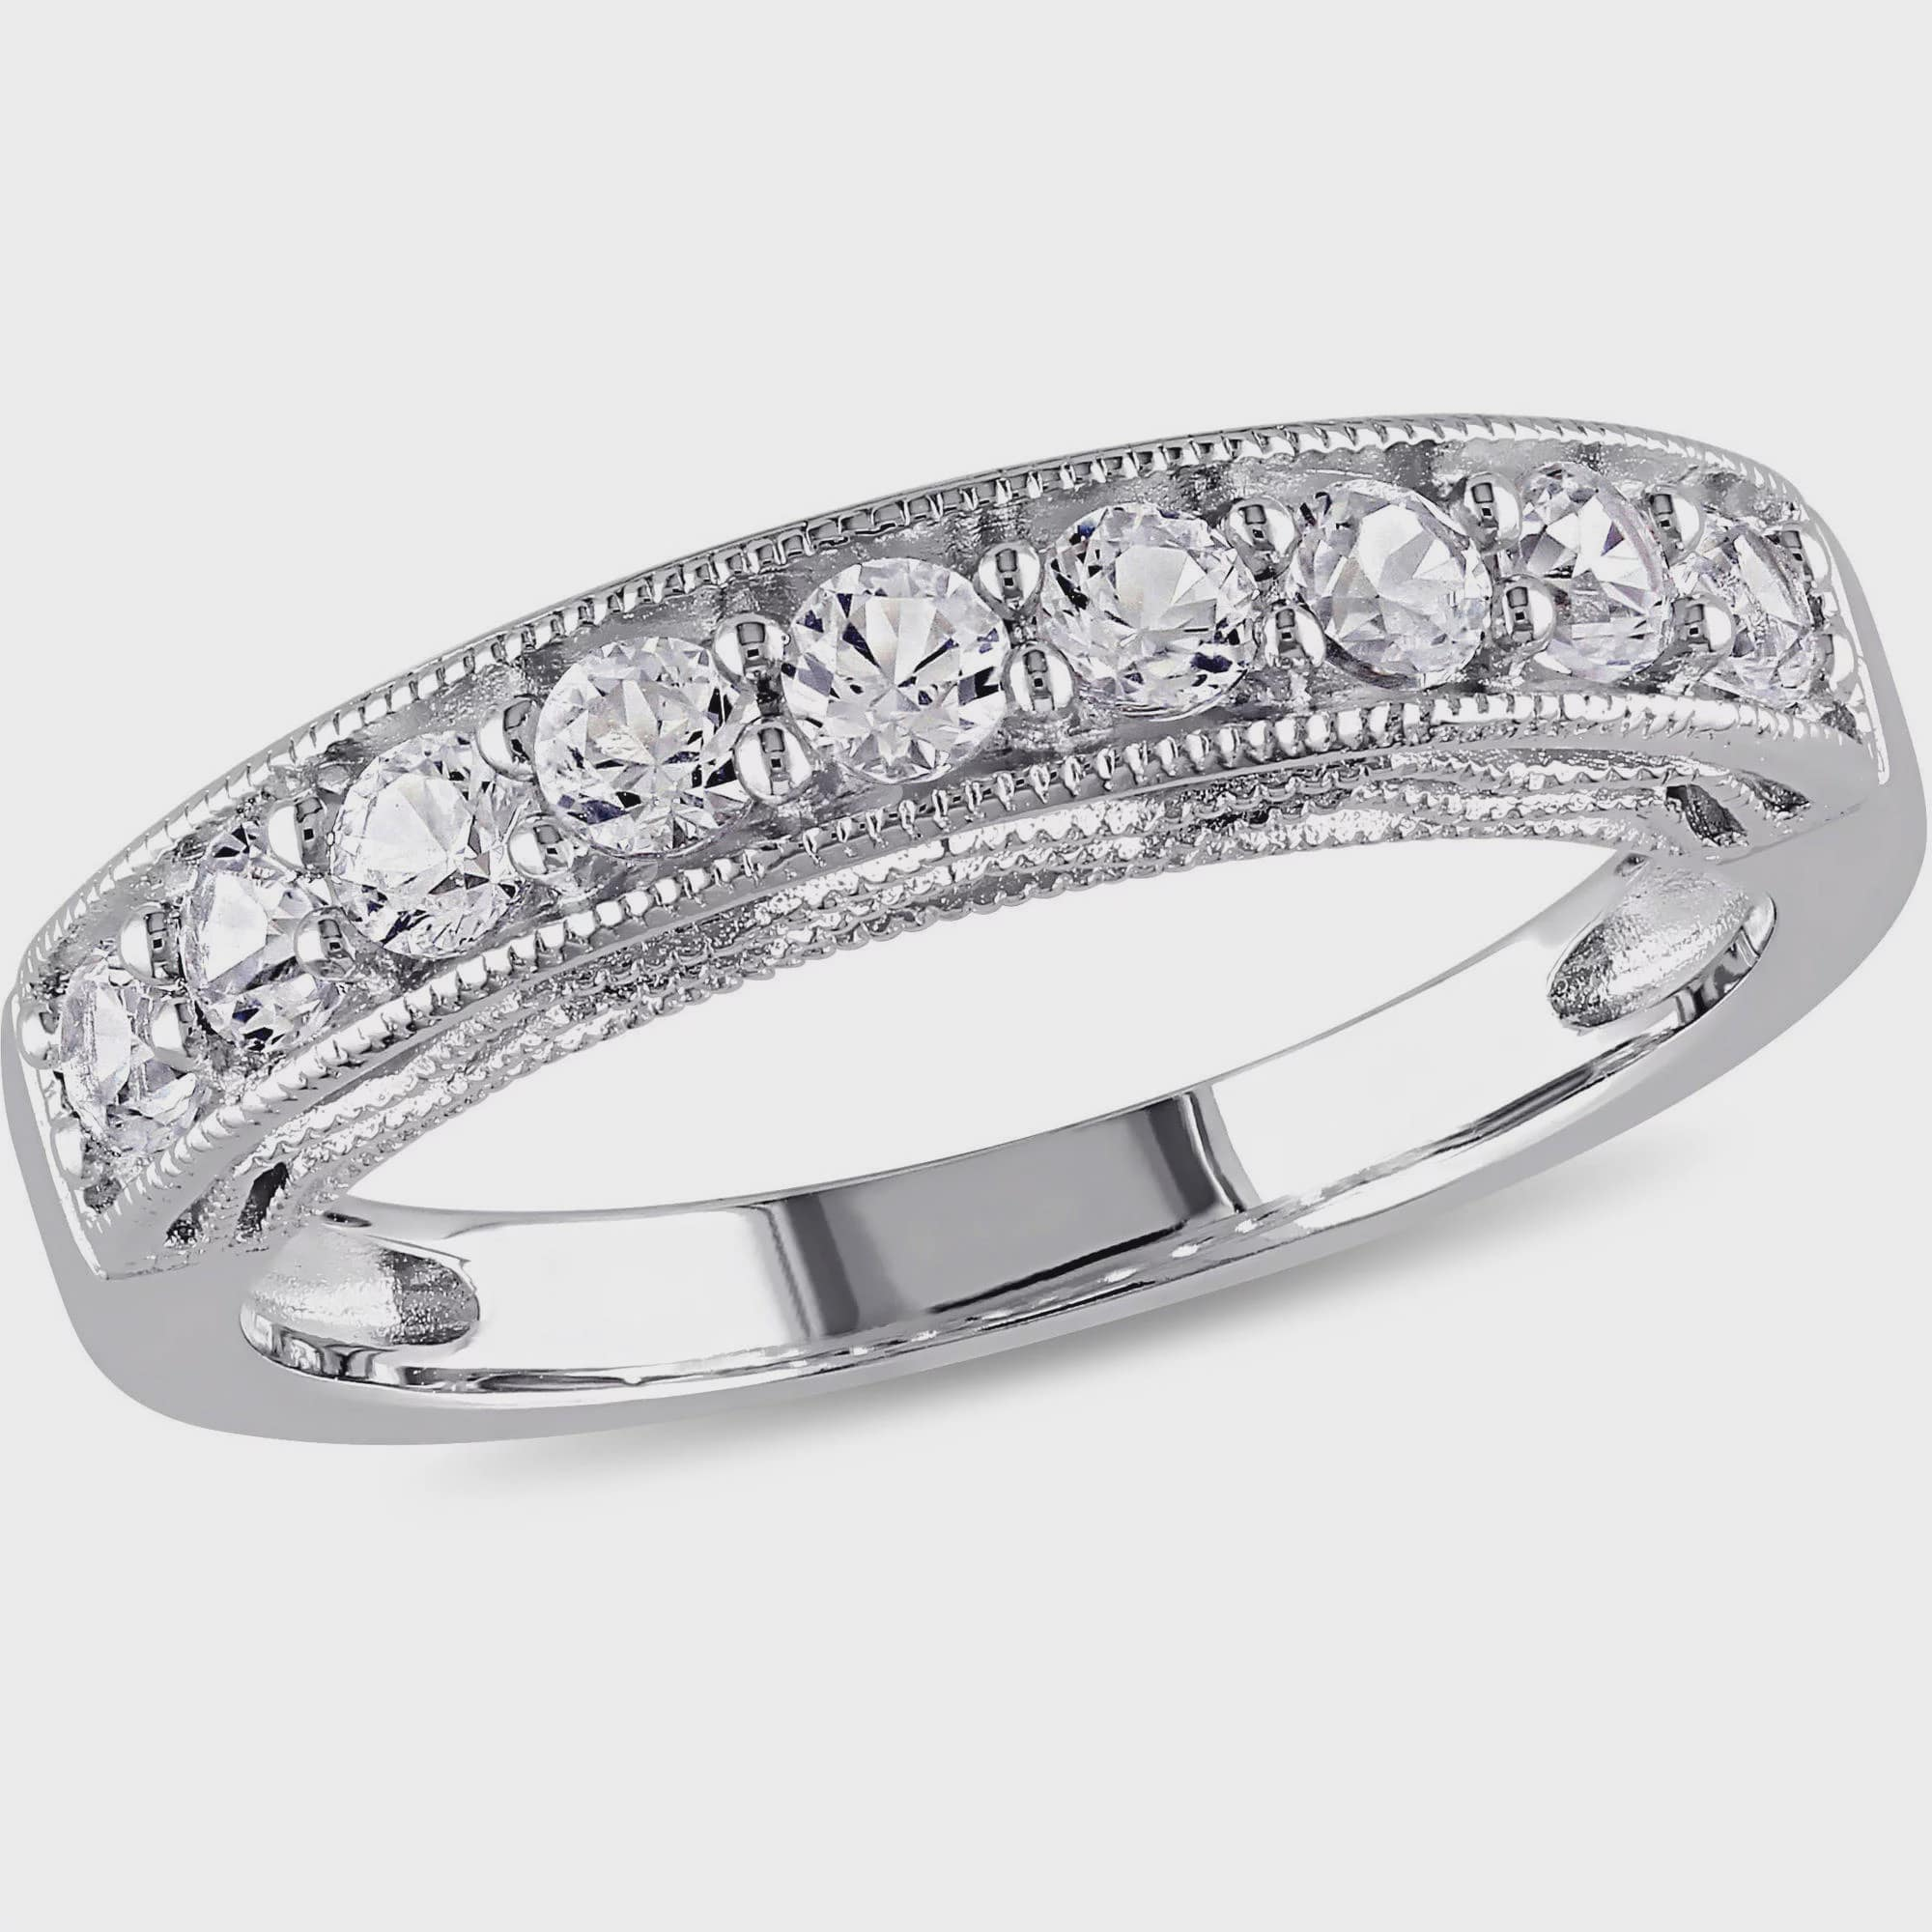 jacksonville bridal categories engagement diamond jewelry product ring and aniversary anniversaries fl engagements rings